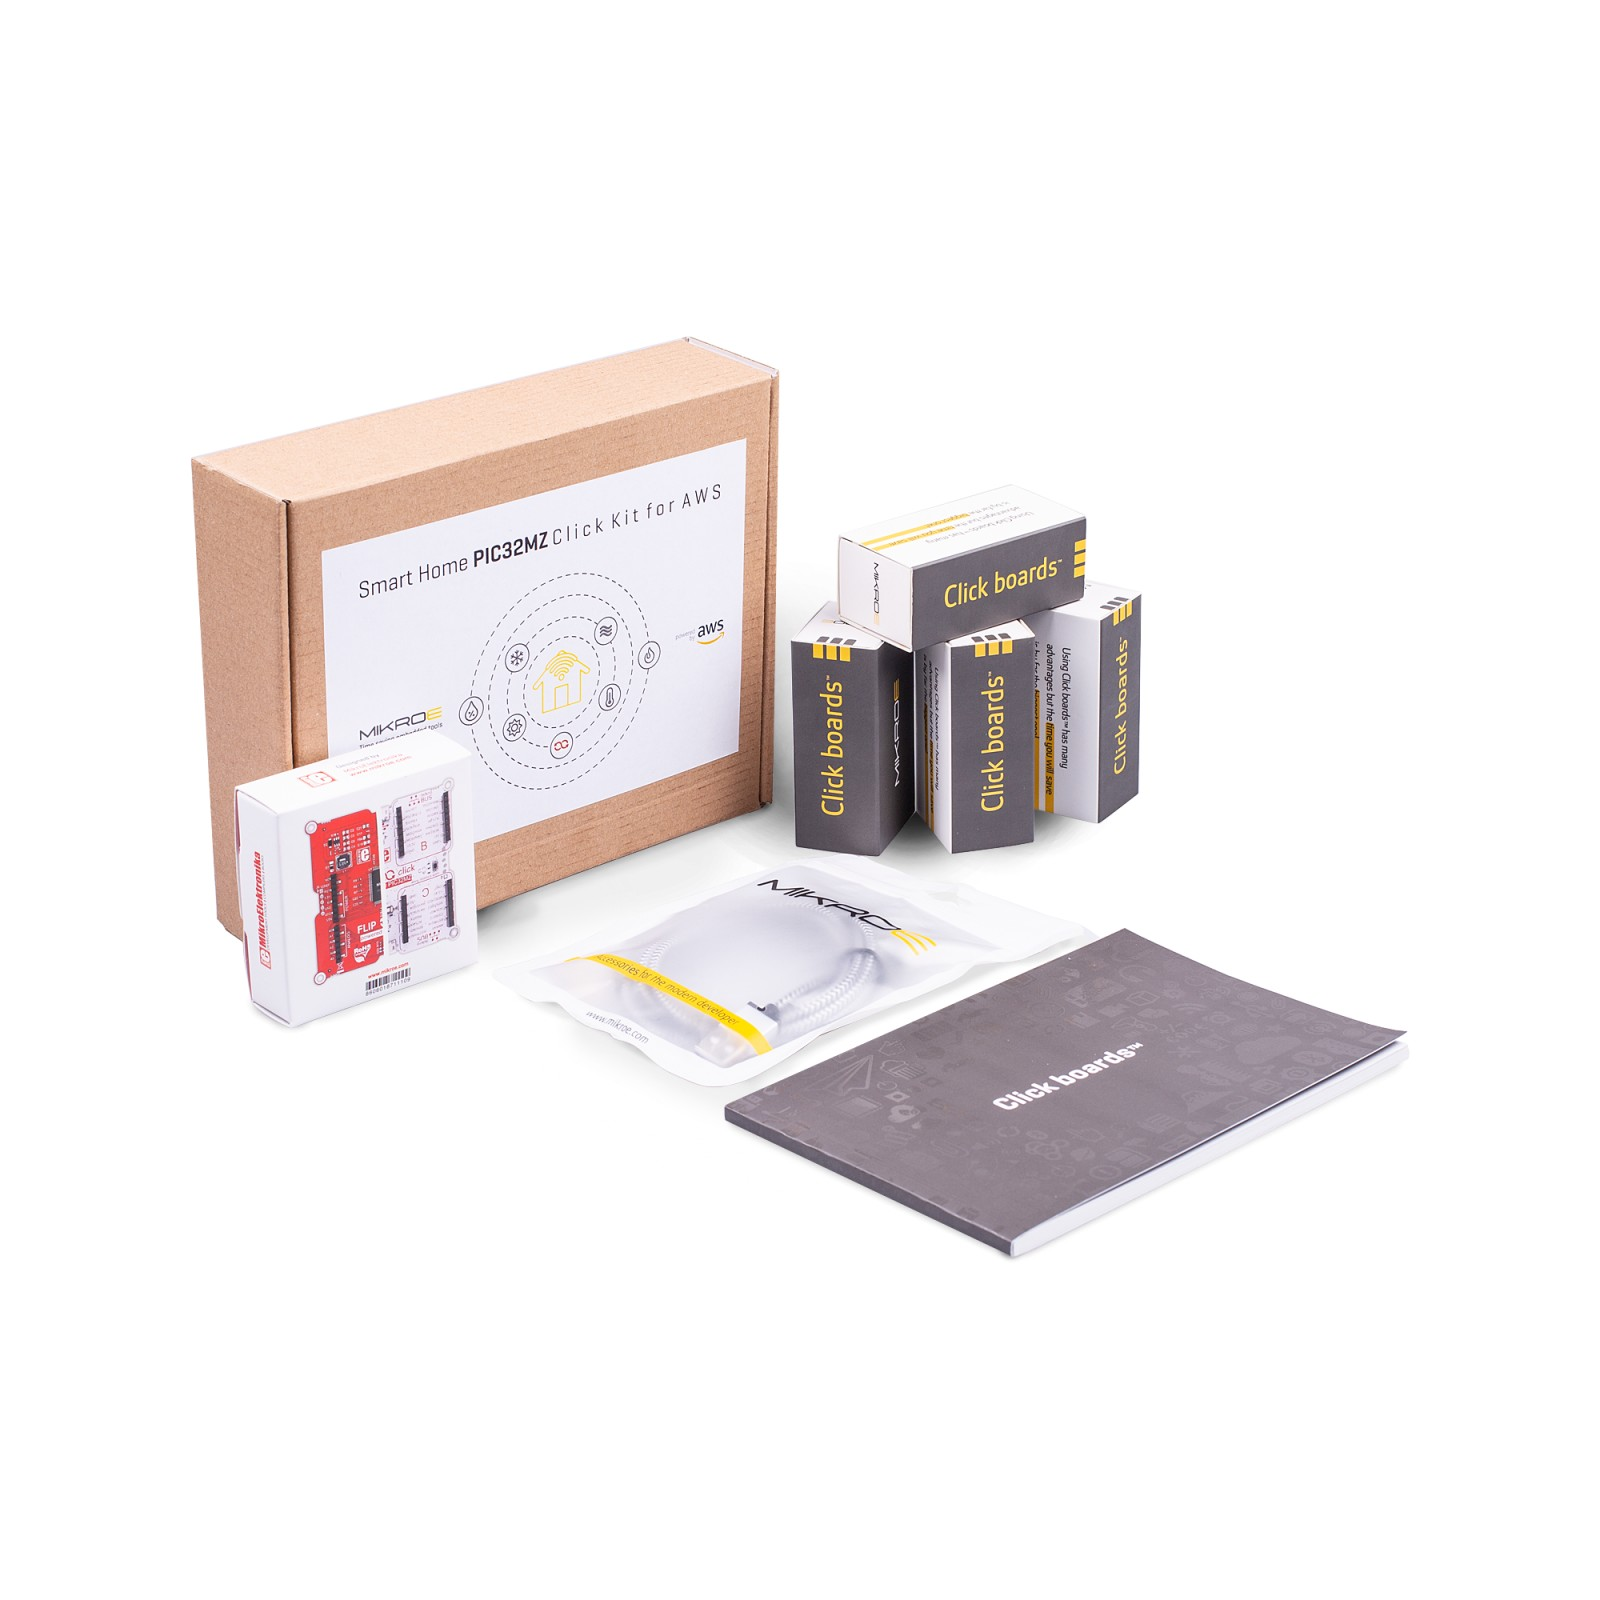 Smart Home PIC32MZ Click Kit for AWS